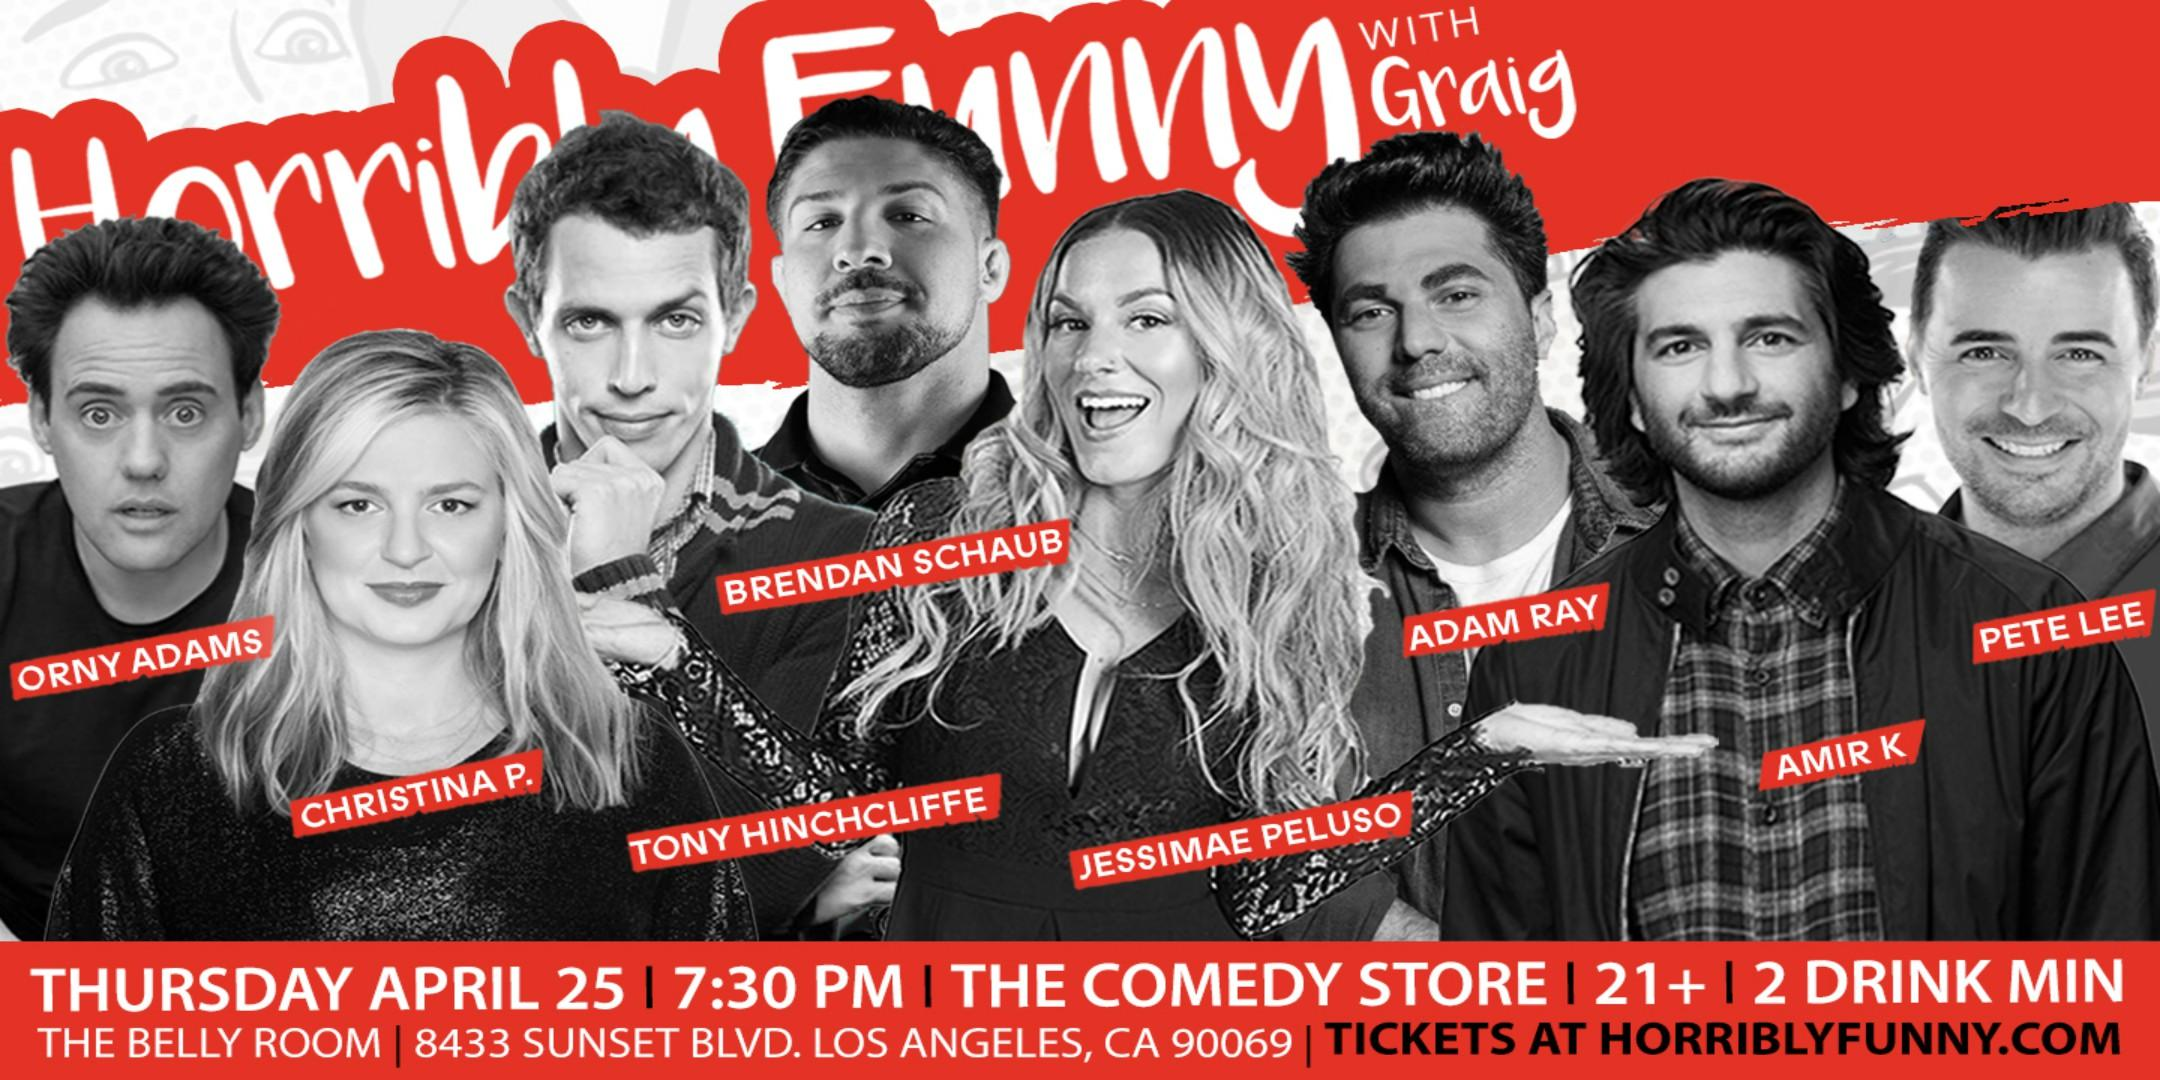 Horribly Funny - Brendan Schaub, Christina P., Orny Adams, Tony Hinchcliffe